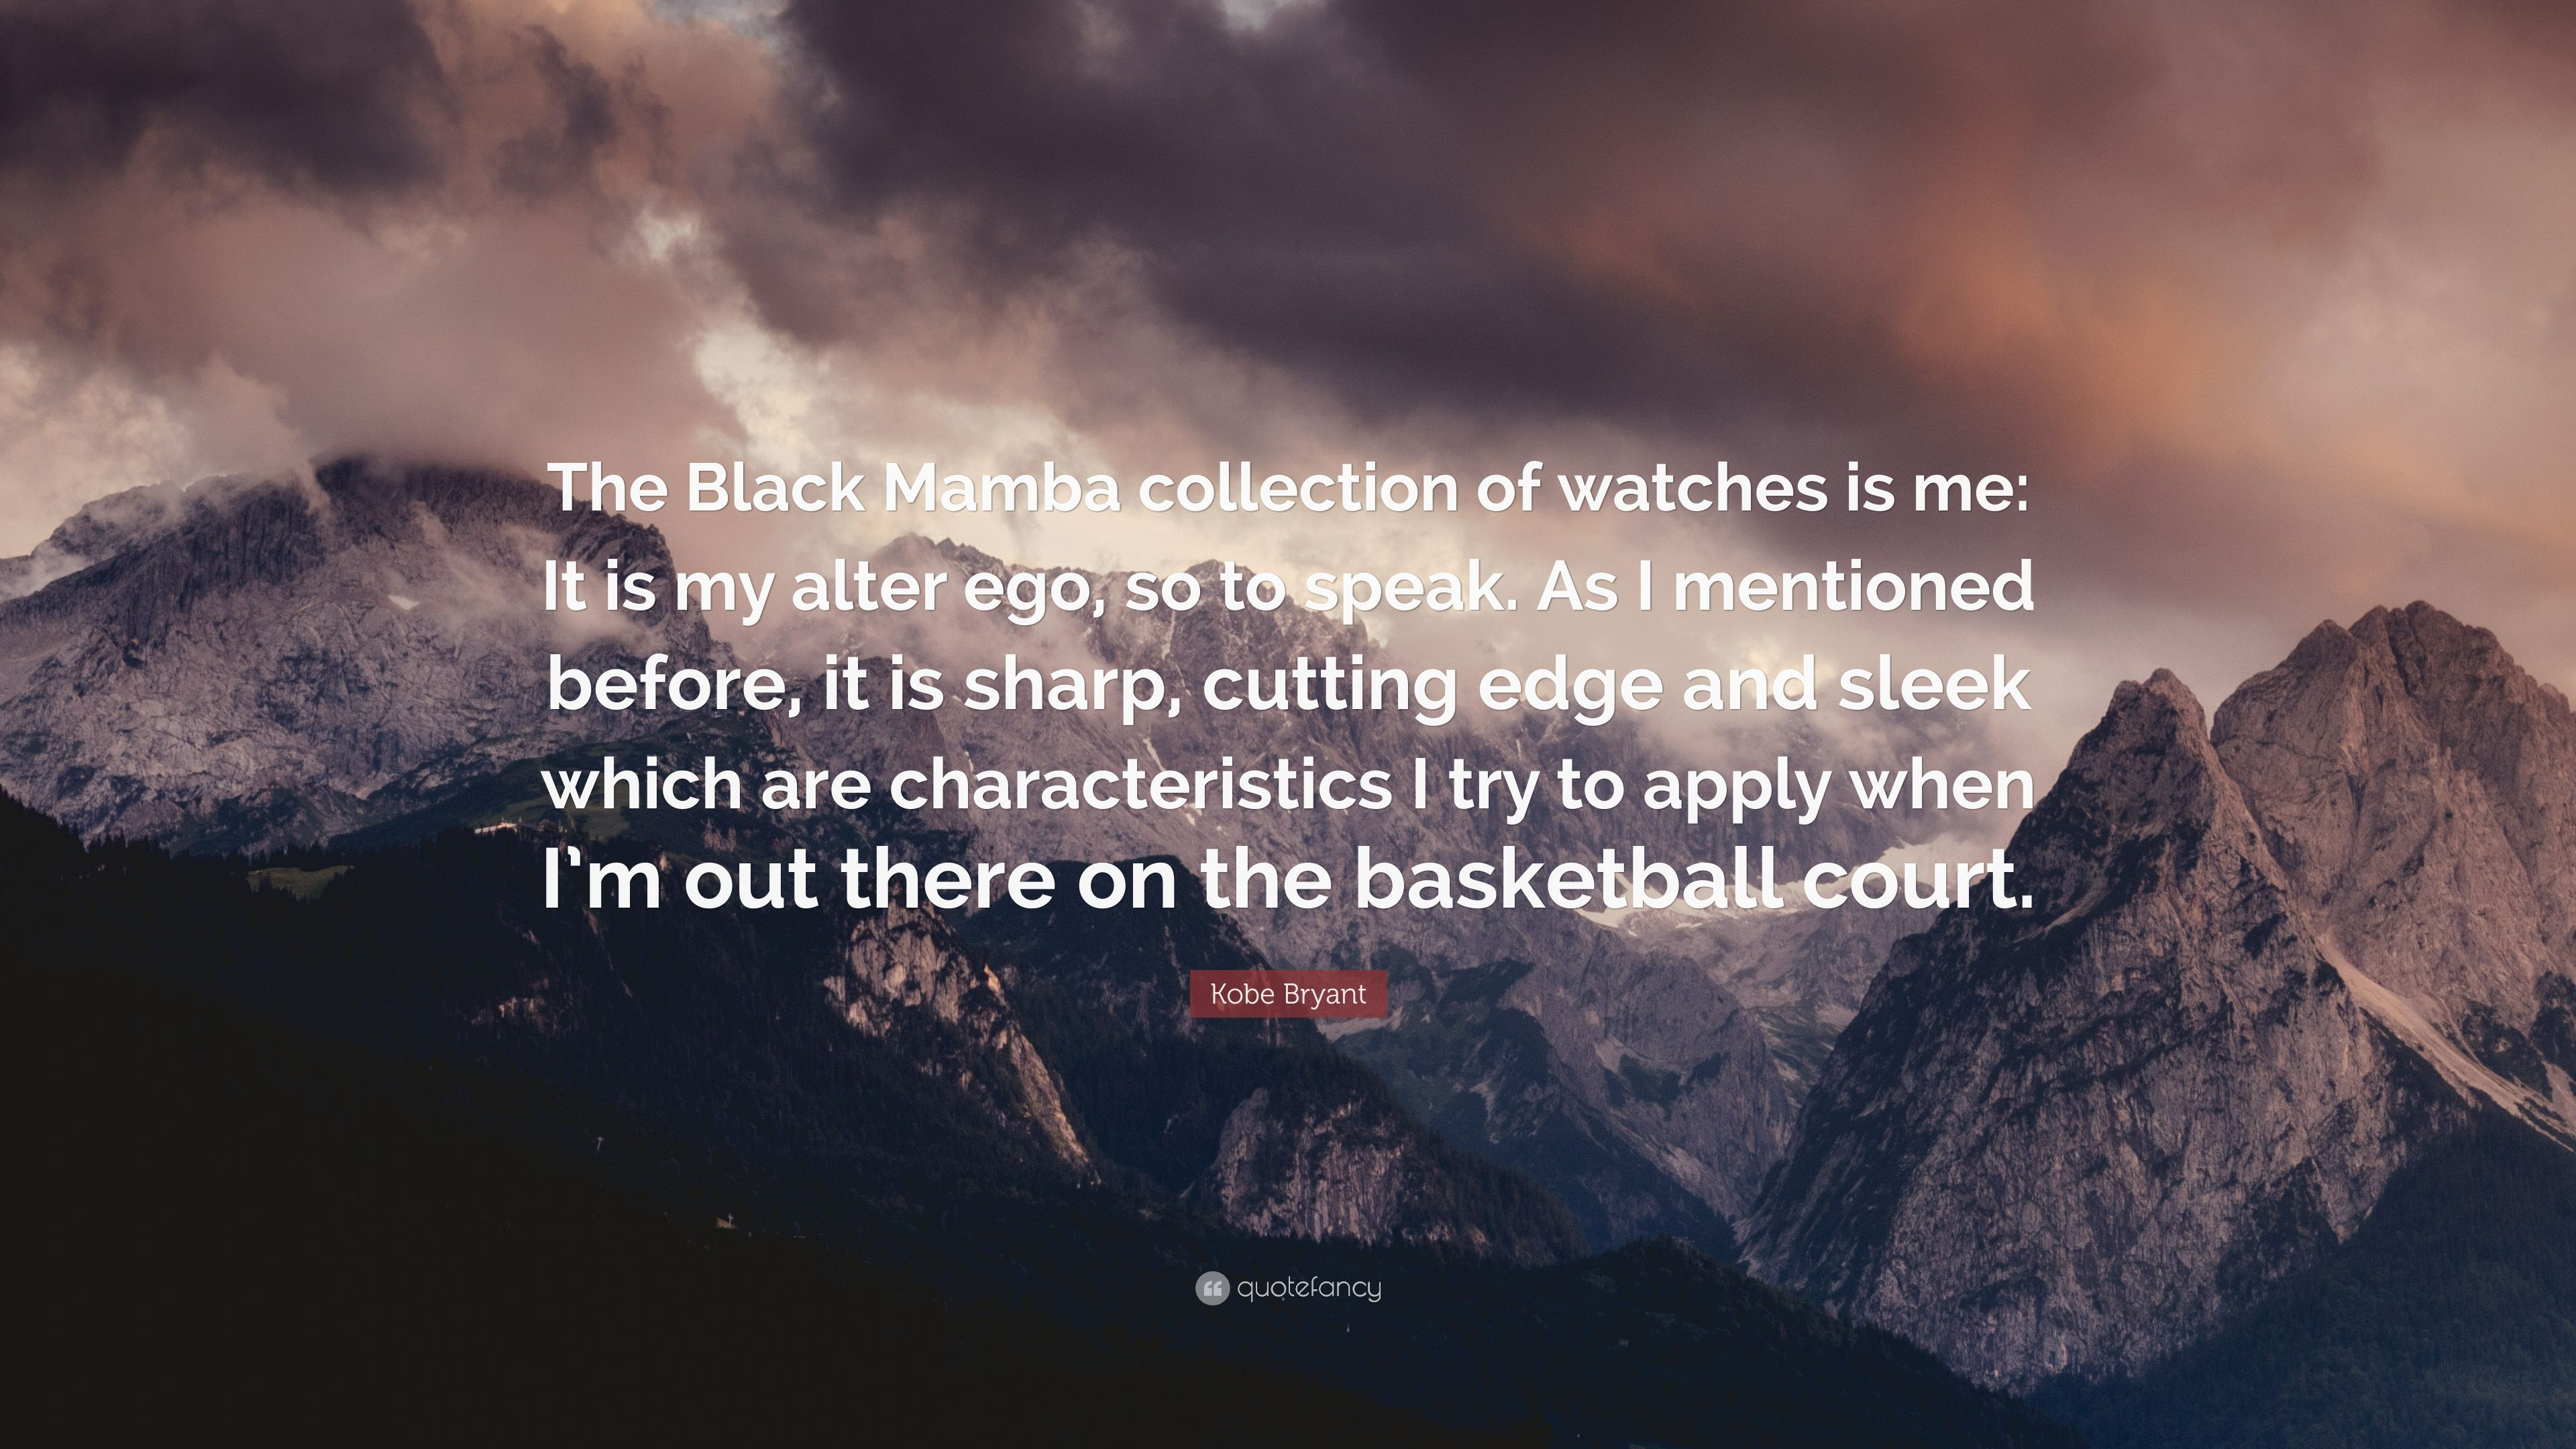 Kobe Bryant Quote The Black Mamba Collection Of Watches Is Me It Is My Alter Ego So To Speak As I Mentioned Before It Is Sharp Cuttin 10 Wallpapers Quotefancy